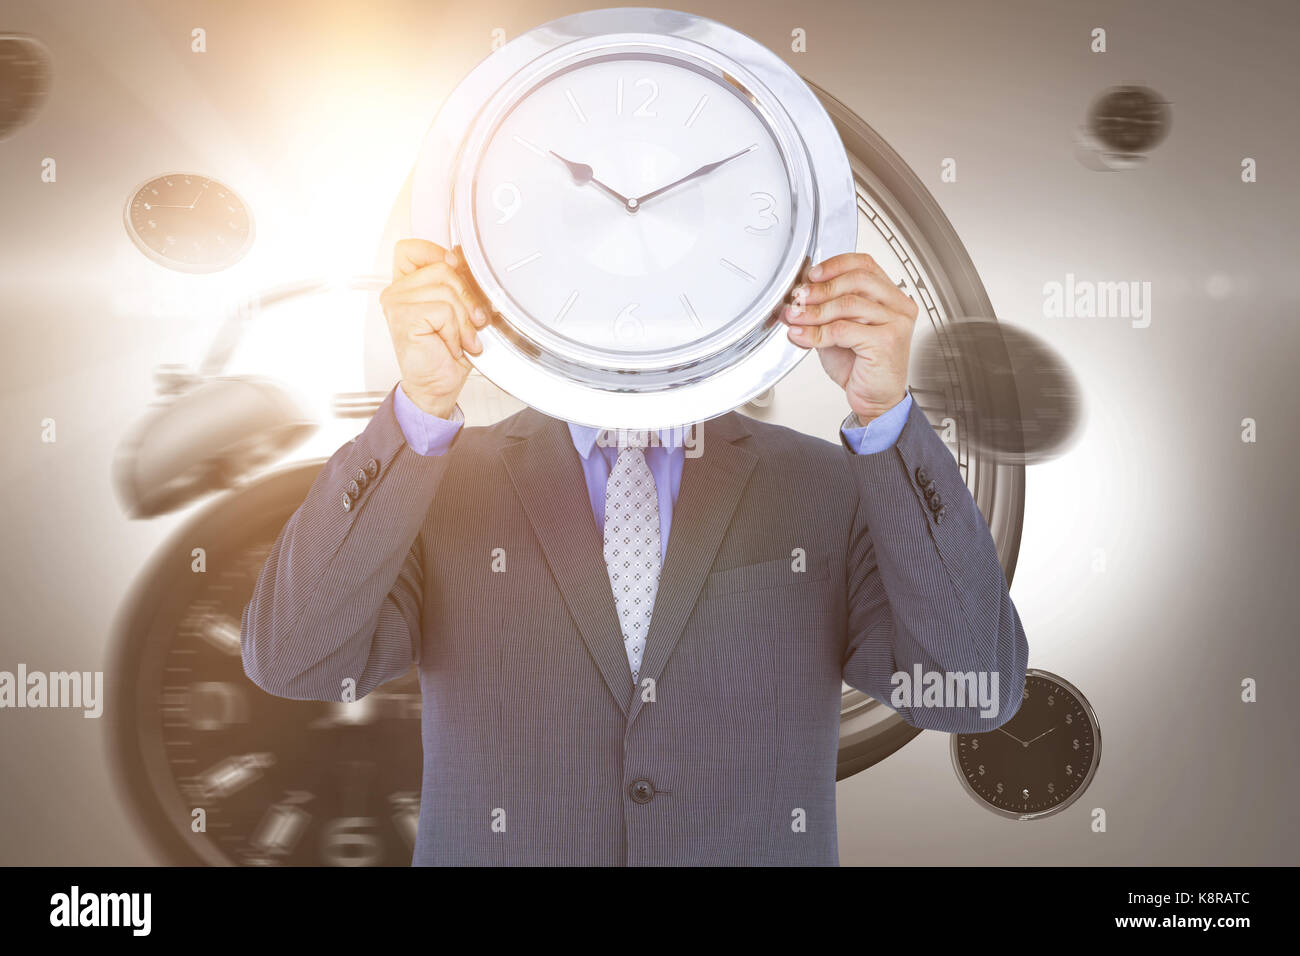 Businessman holding wall clock in front of face against digital image of alarm and wall clocks - Stock Image